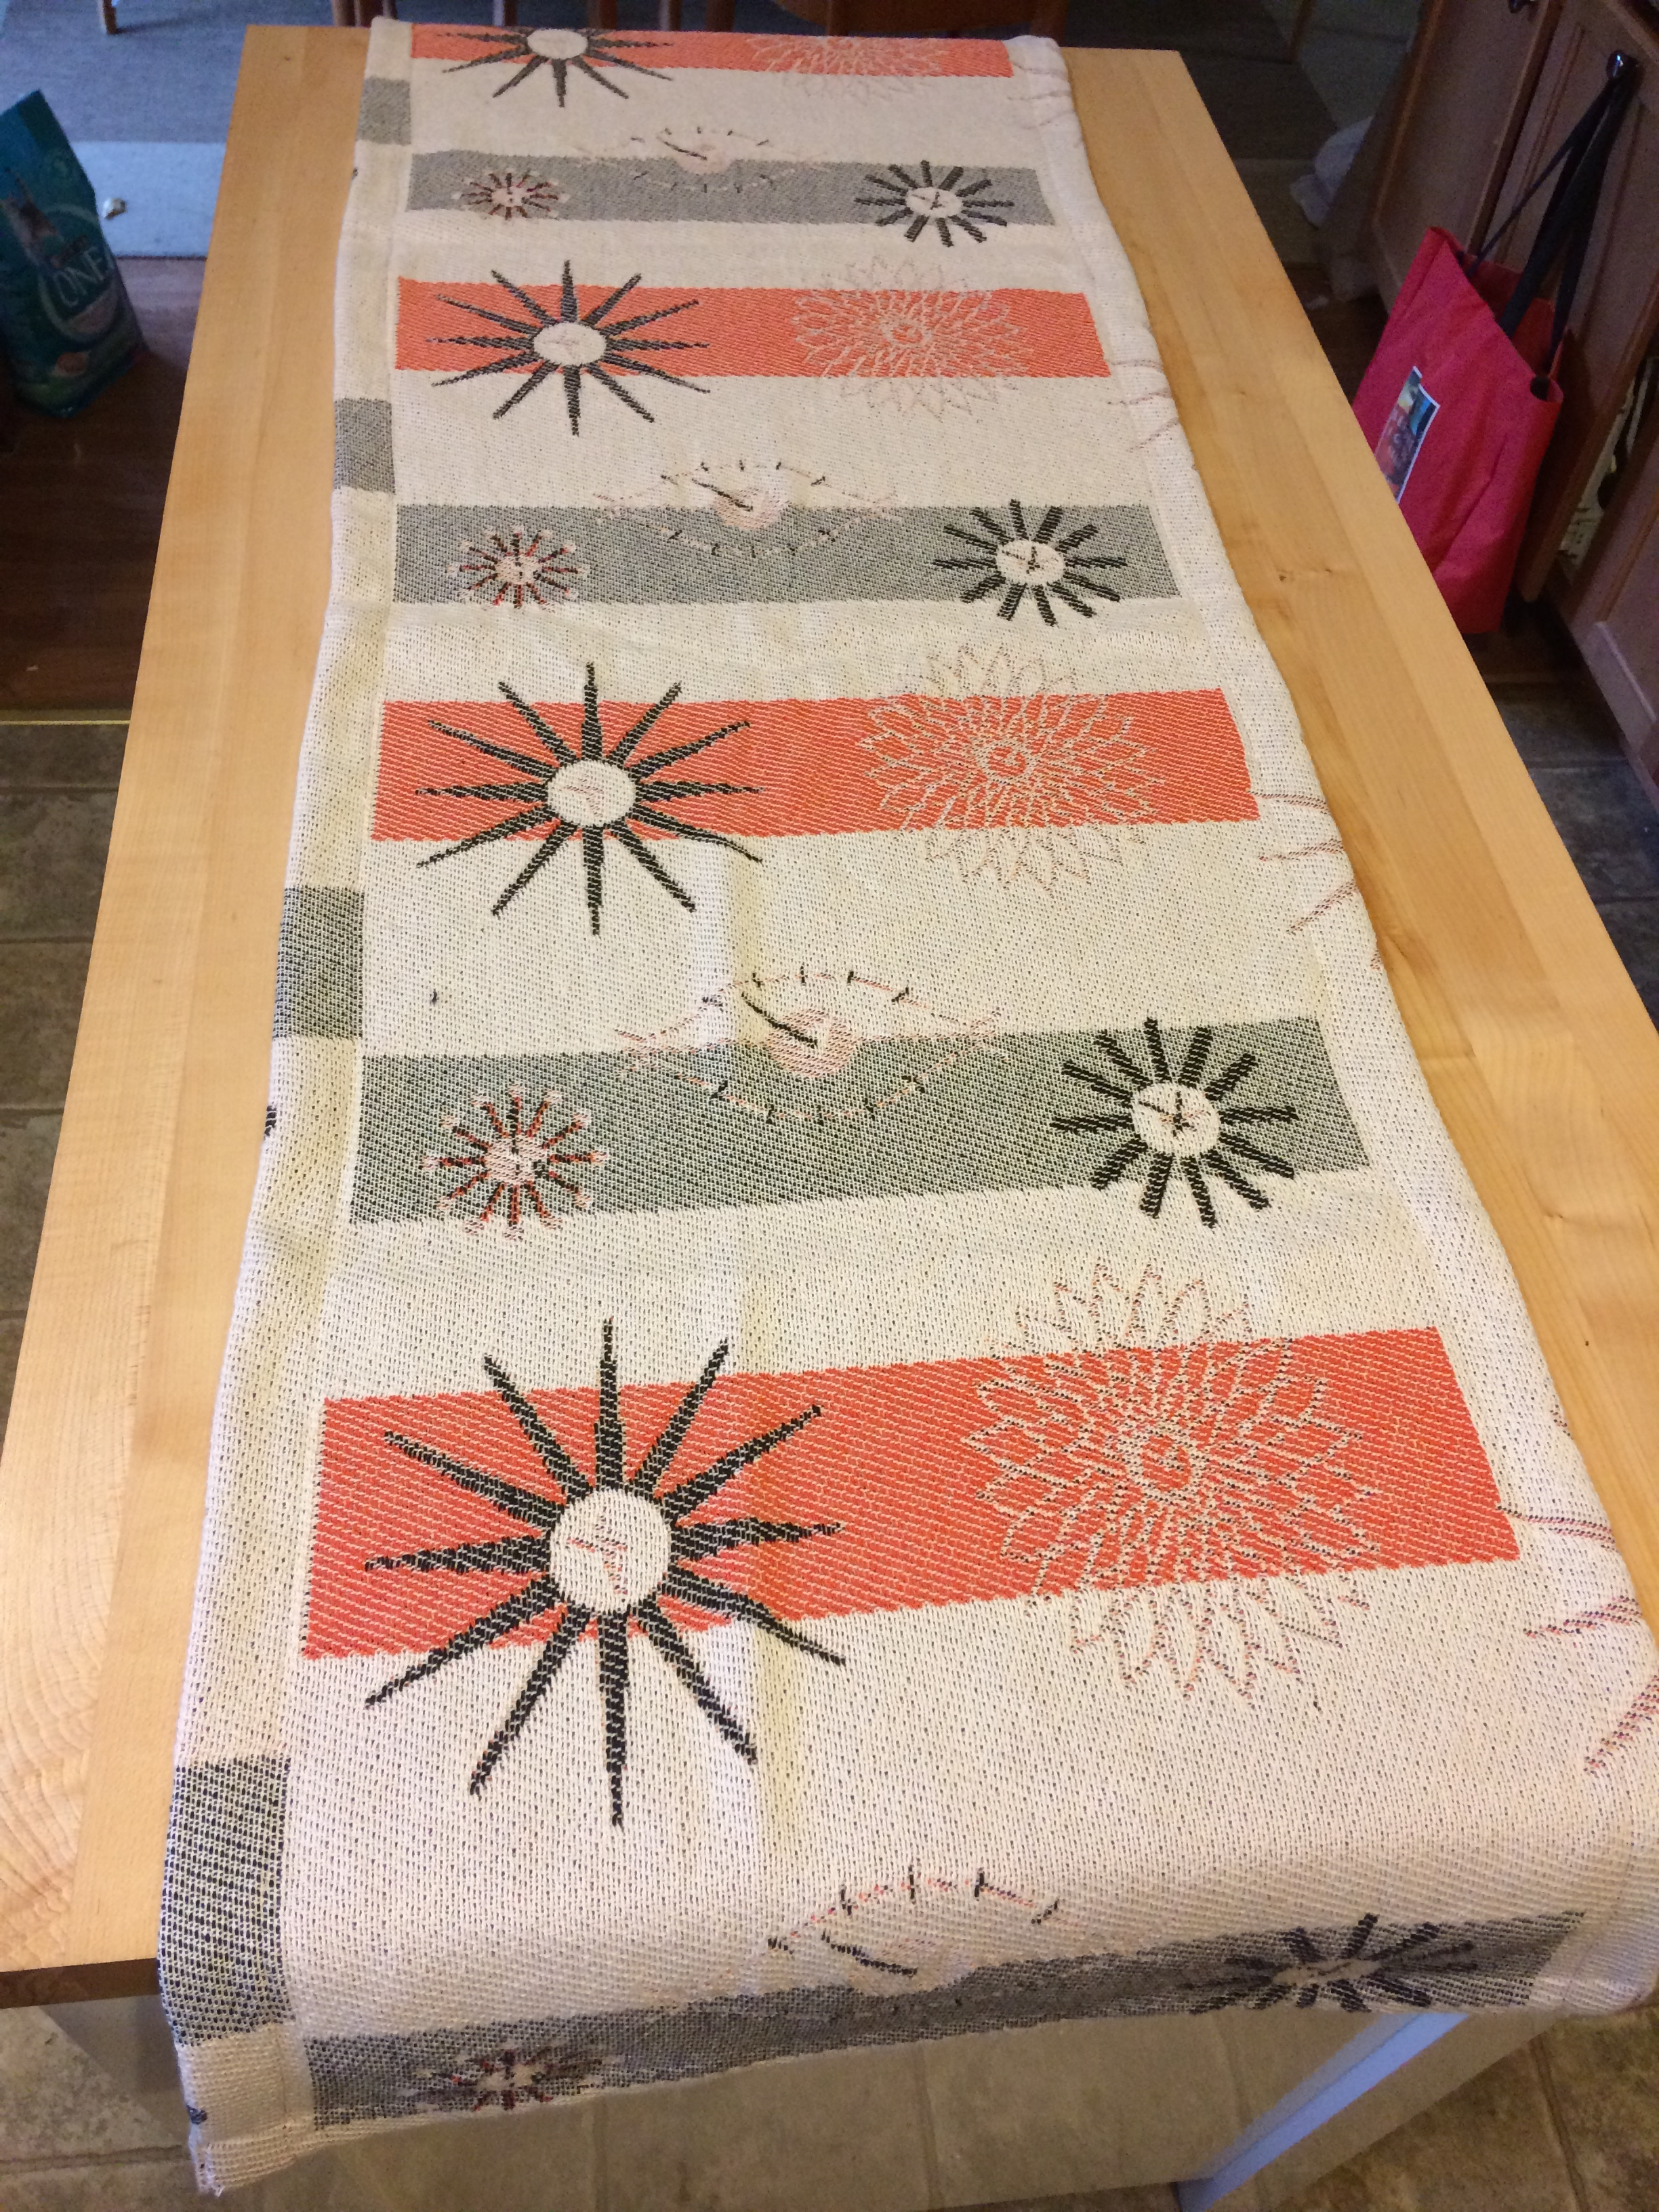 Available as of time of writing but has watchers. $25 plus shipping! Great price and so beautiful.  The intricately woven pattern features 3 thread colors....deep orange, black and natural.  If you can't afford a clock, this at leas will tide you over.  Looks great on a table or credenza. https://www.ebay.com/itm/322359452461